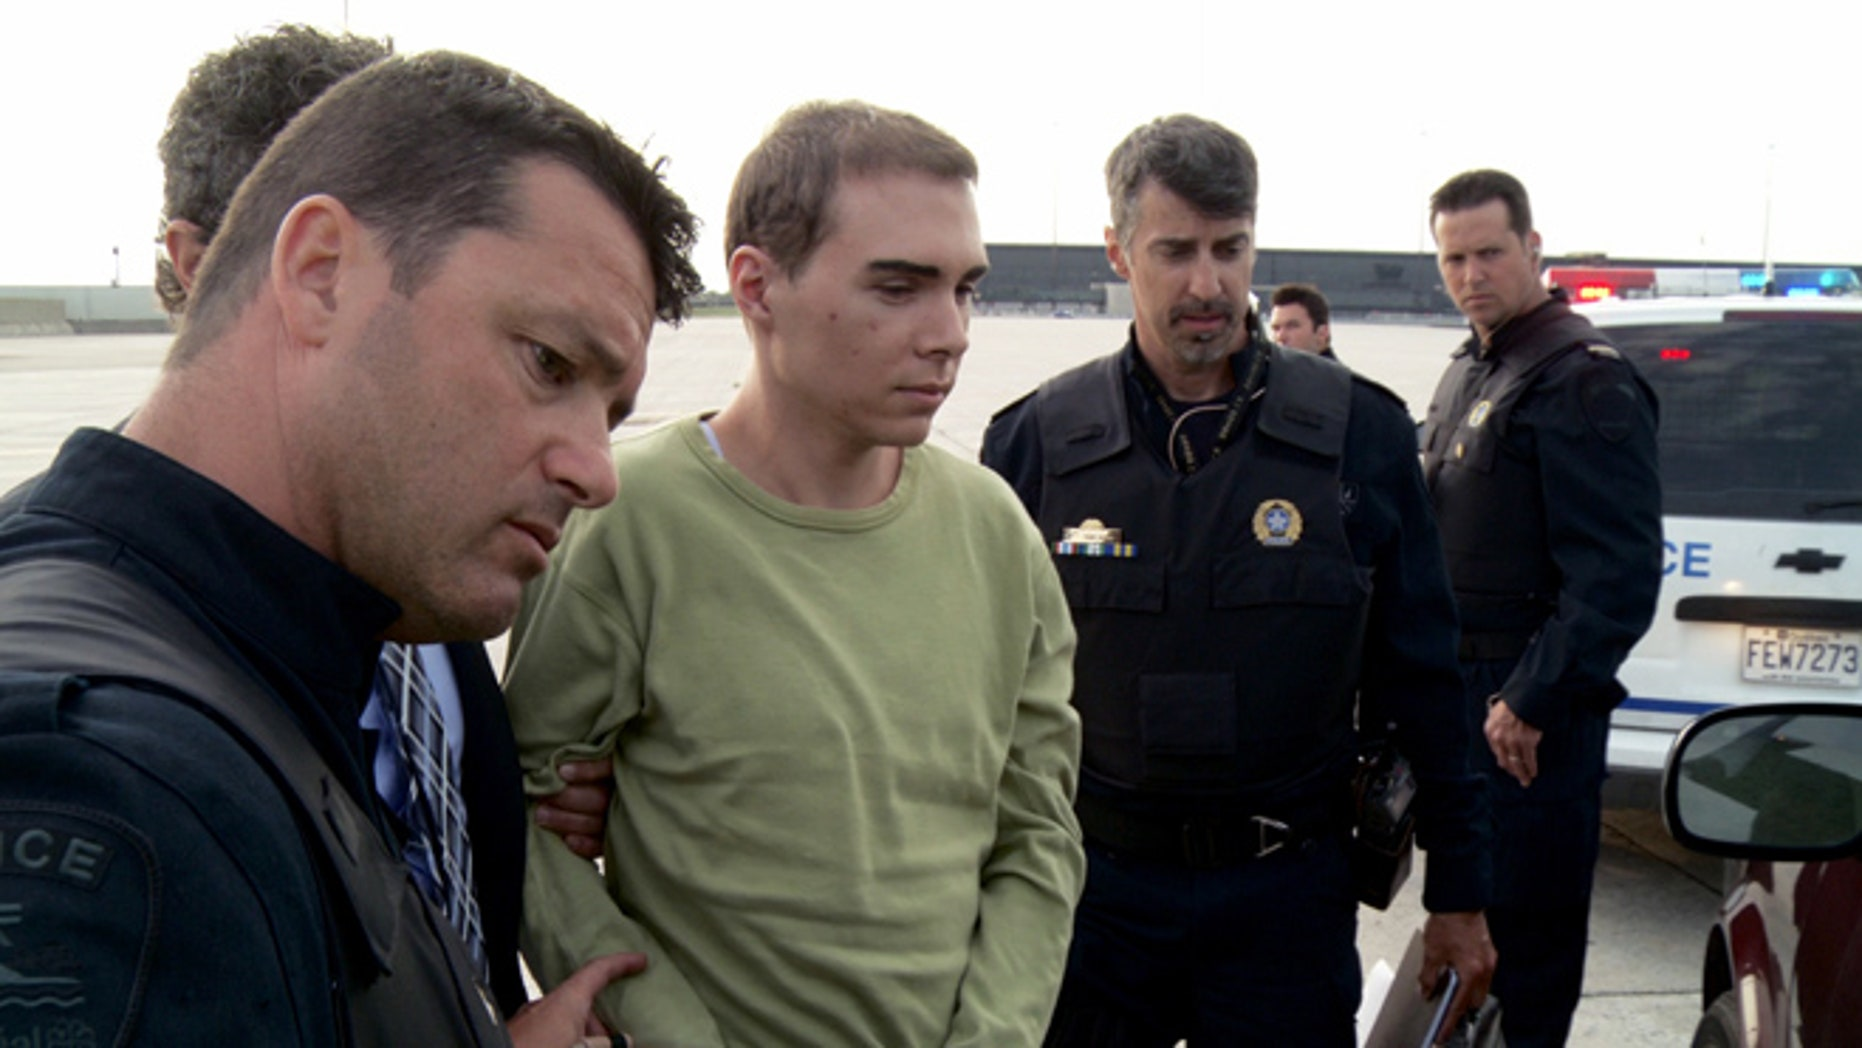 June 18, 2012: In this file photo provided by Montreal Police, Luka Rocco Magnotta is taken by police from a Canadian military plane to a waiting van in Mirabel, Quebec.